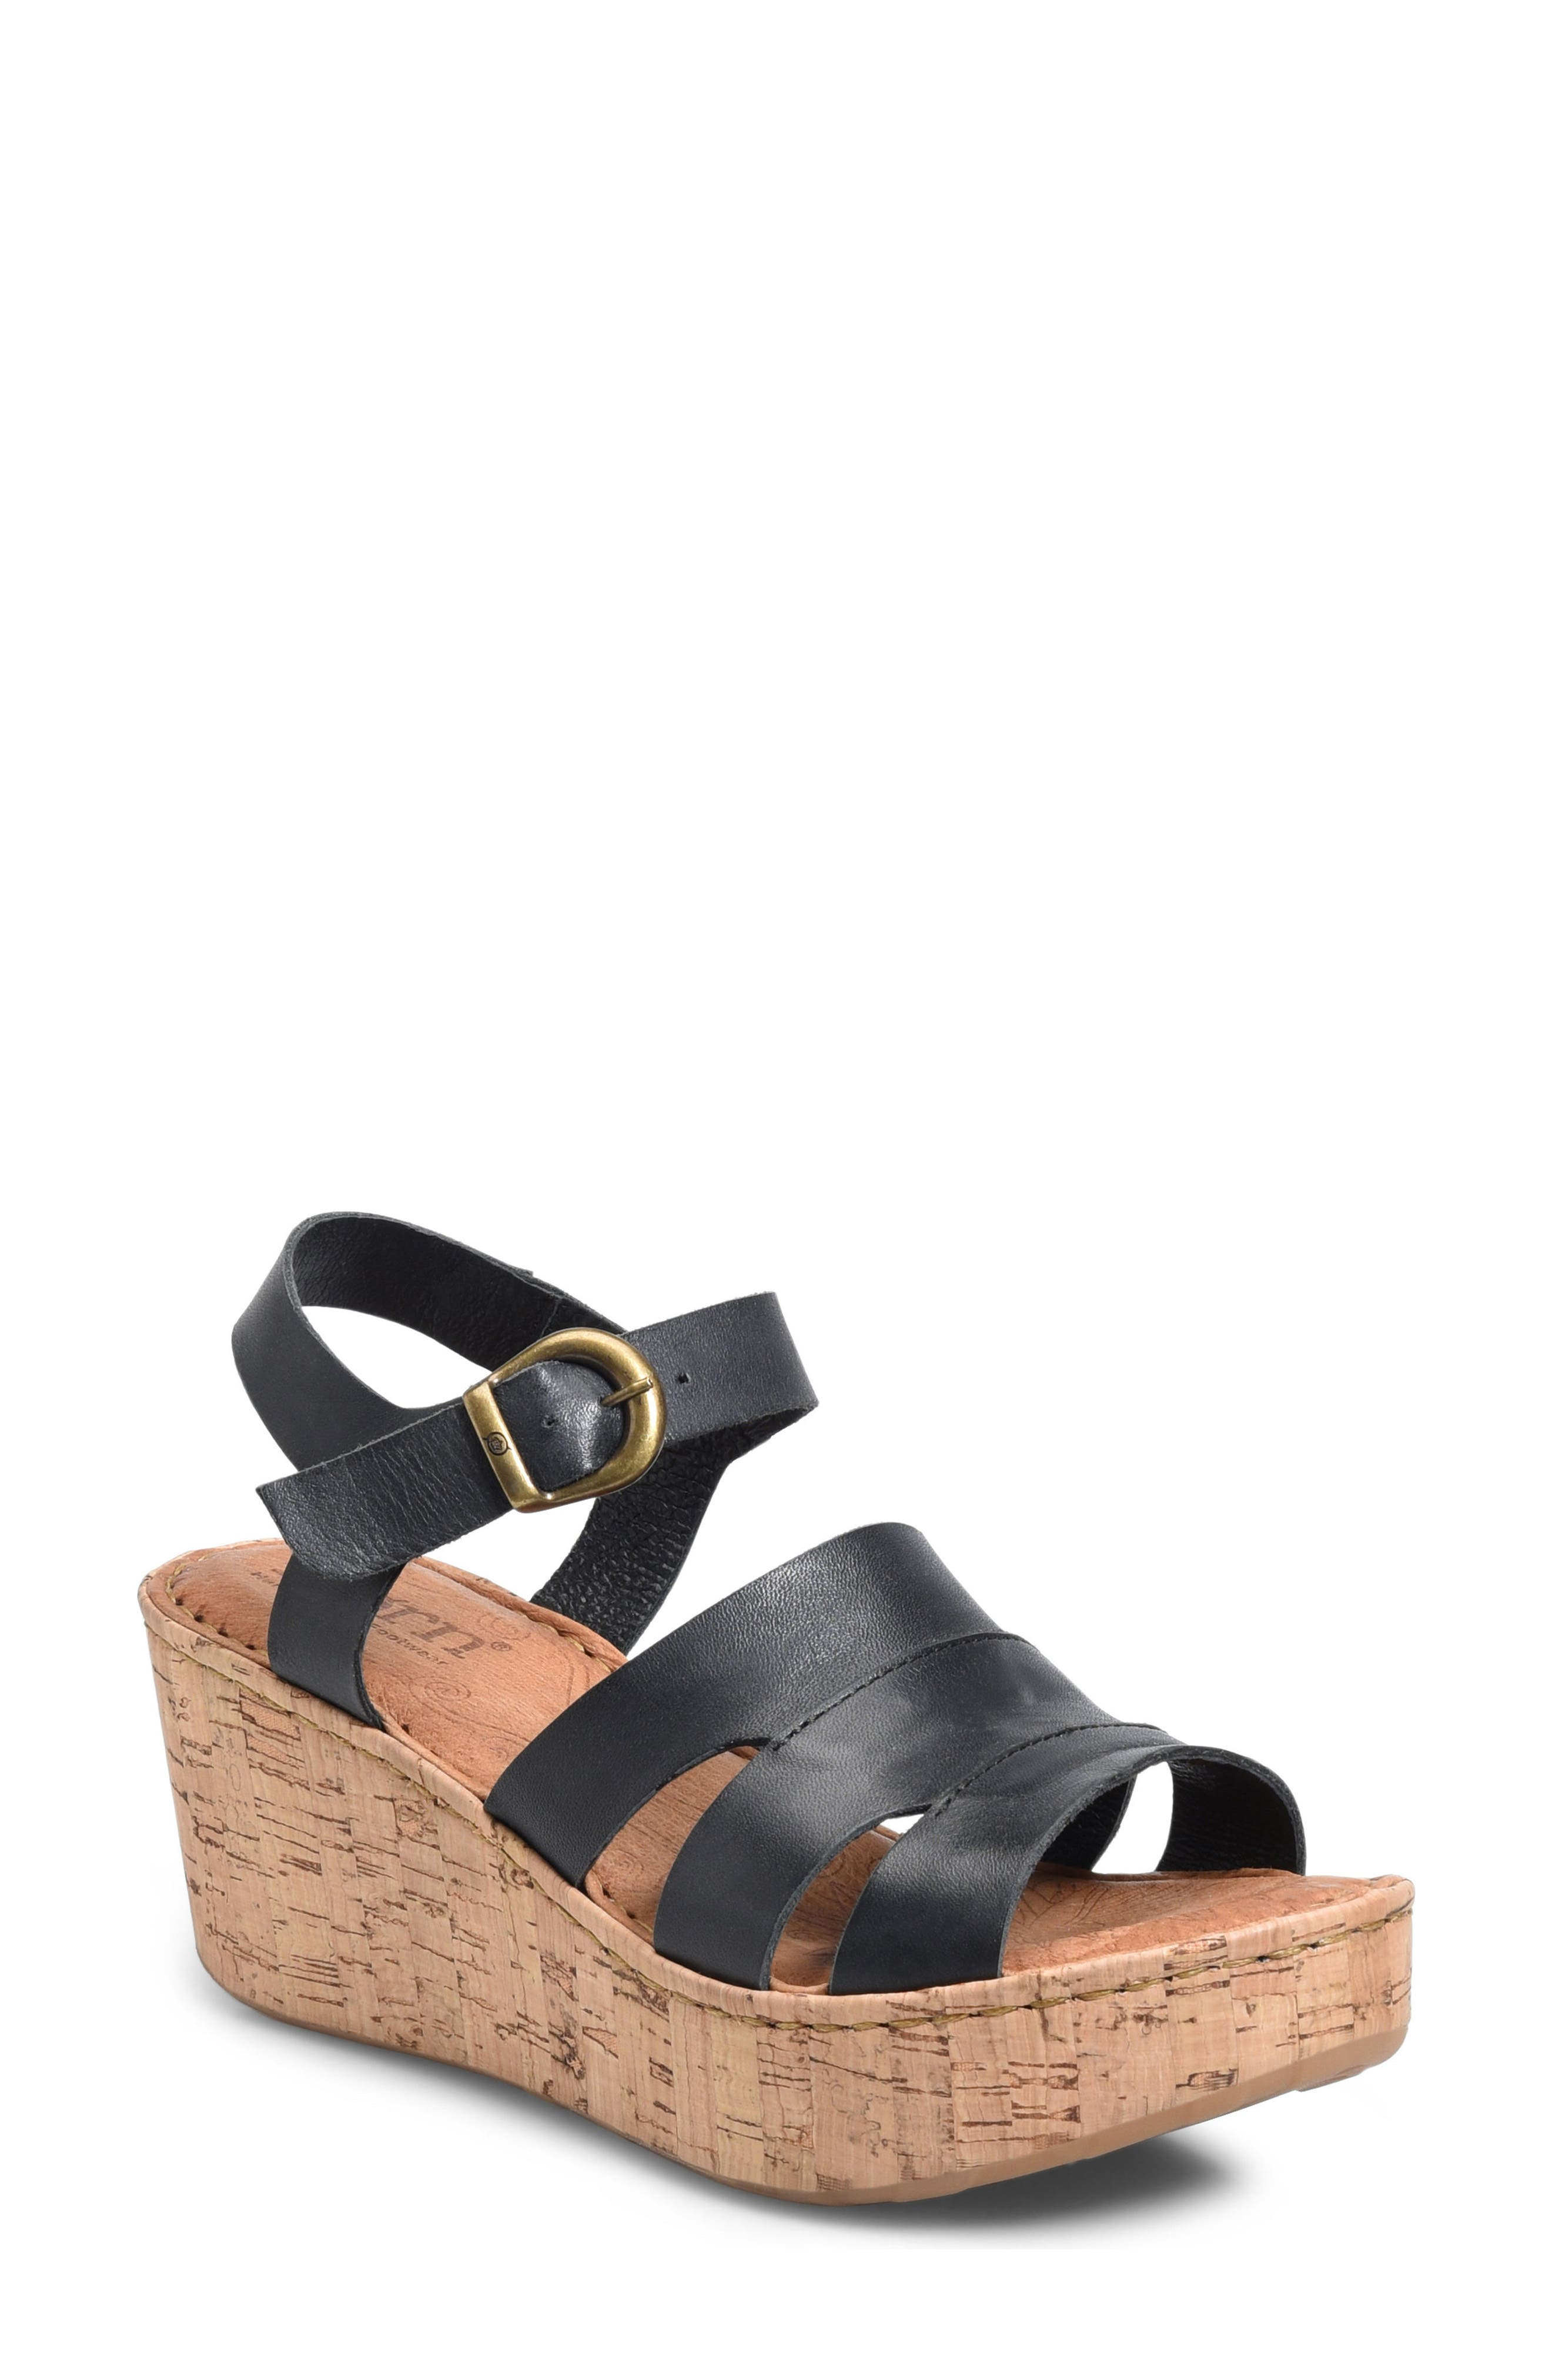 Anori Platform Wedge Sandal,                         Main,                         color, Black Leather